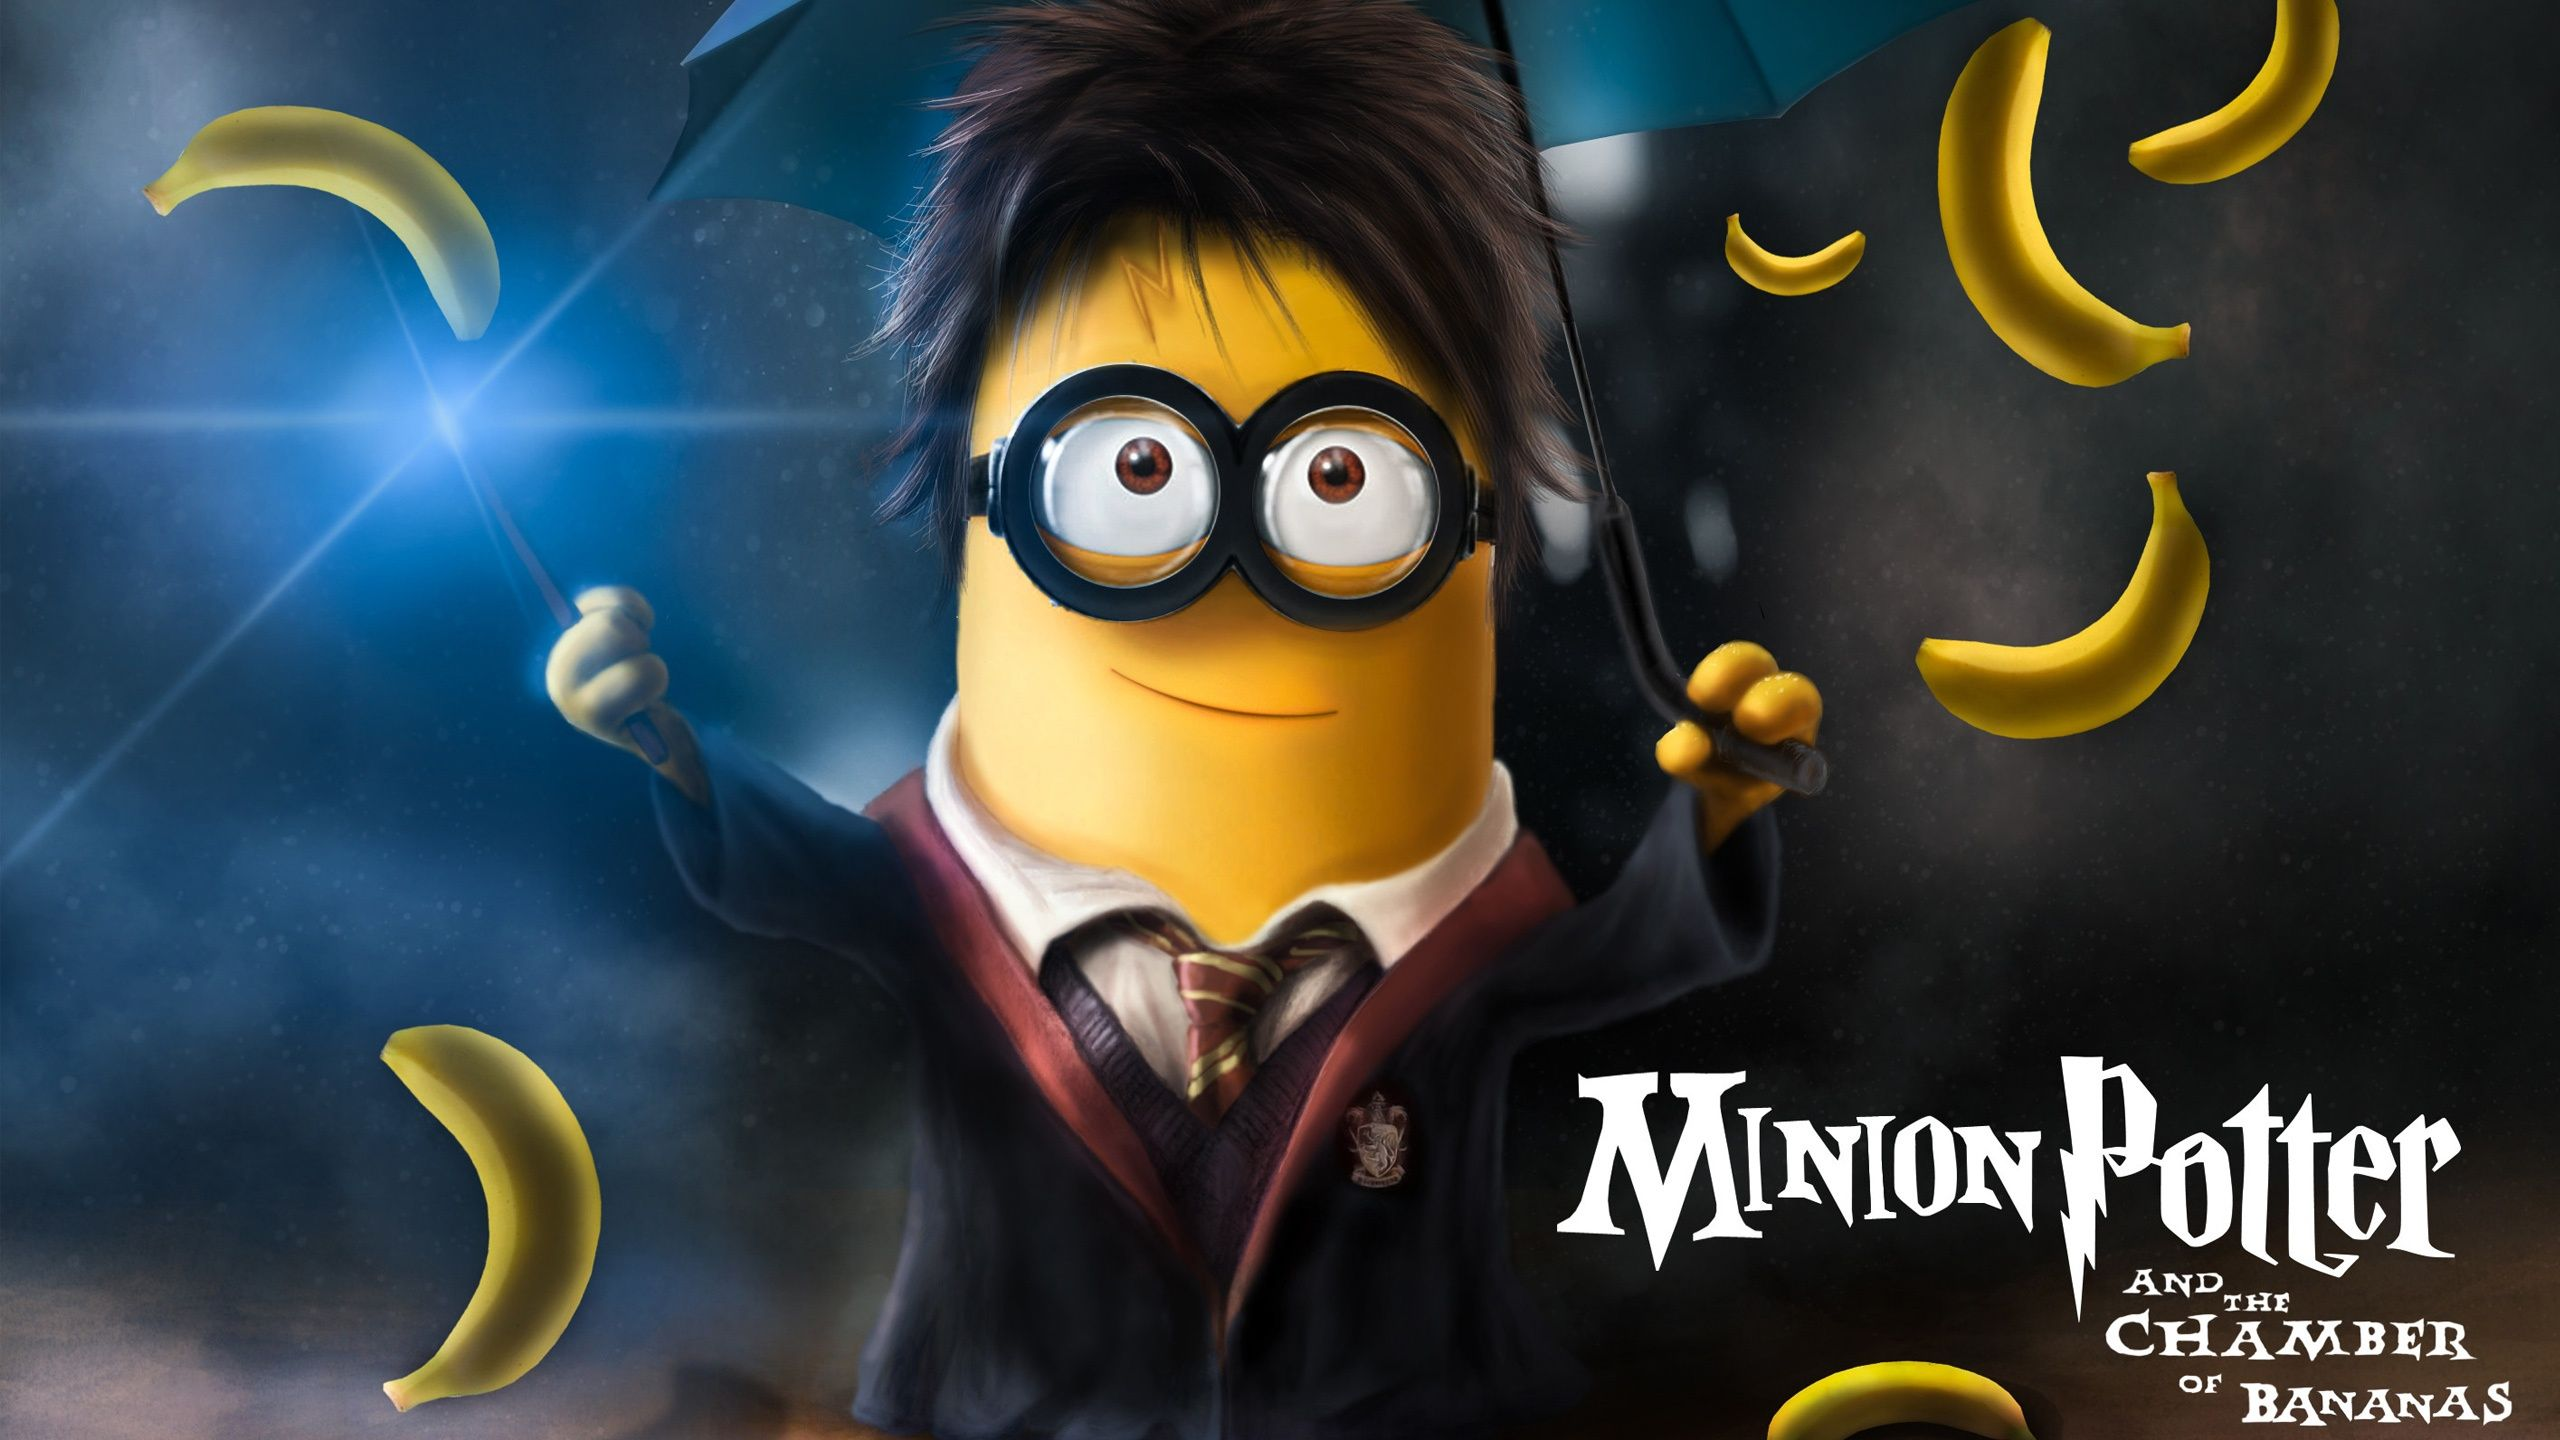 Download Wallpaper Harry Potter Animated - 4b831bec046efee191dc54cdabd0b62a  Image_15281.jpg